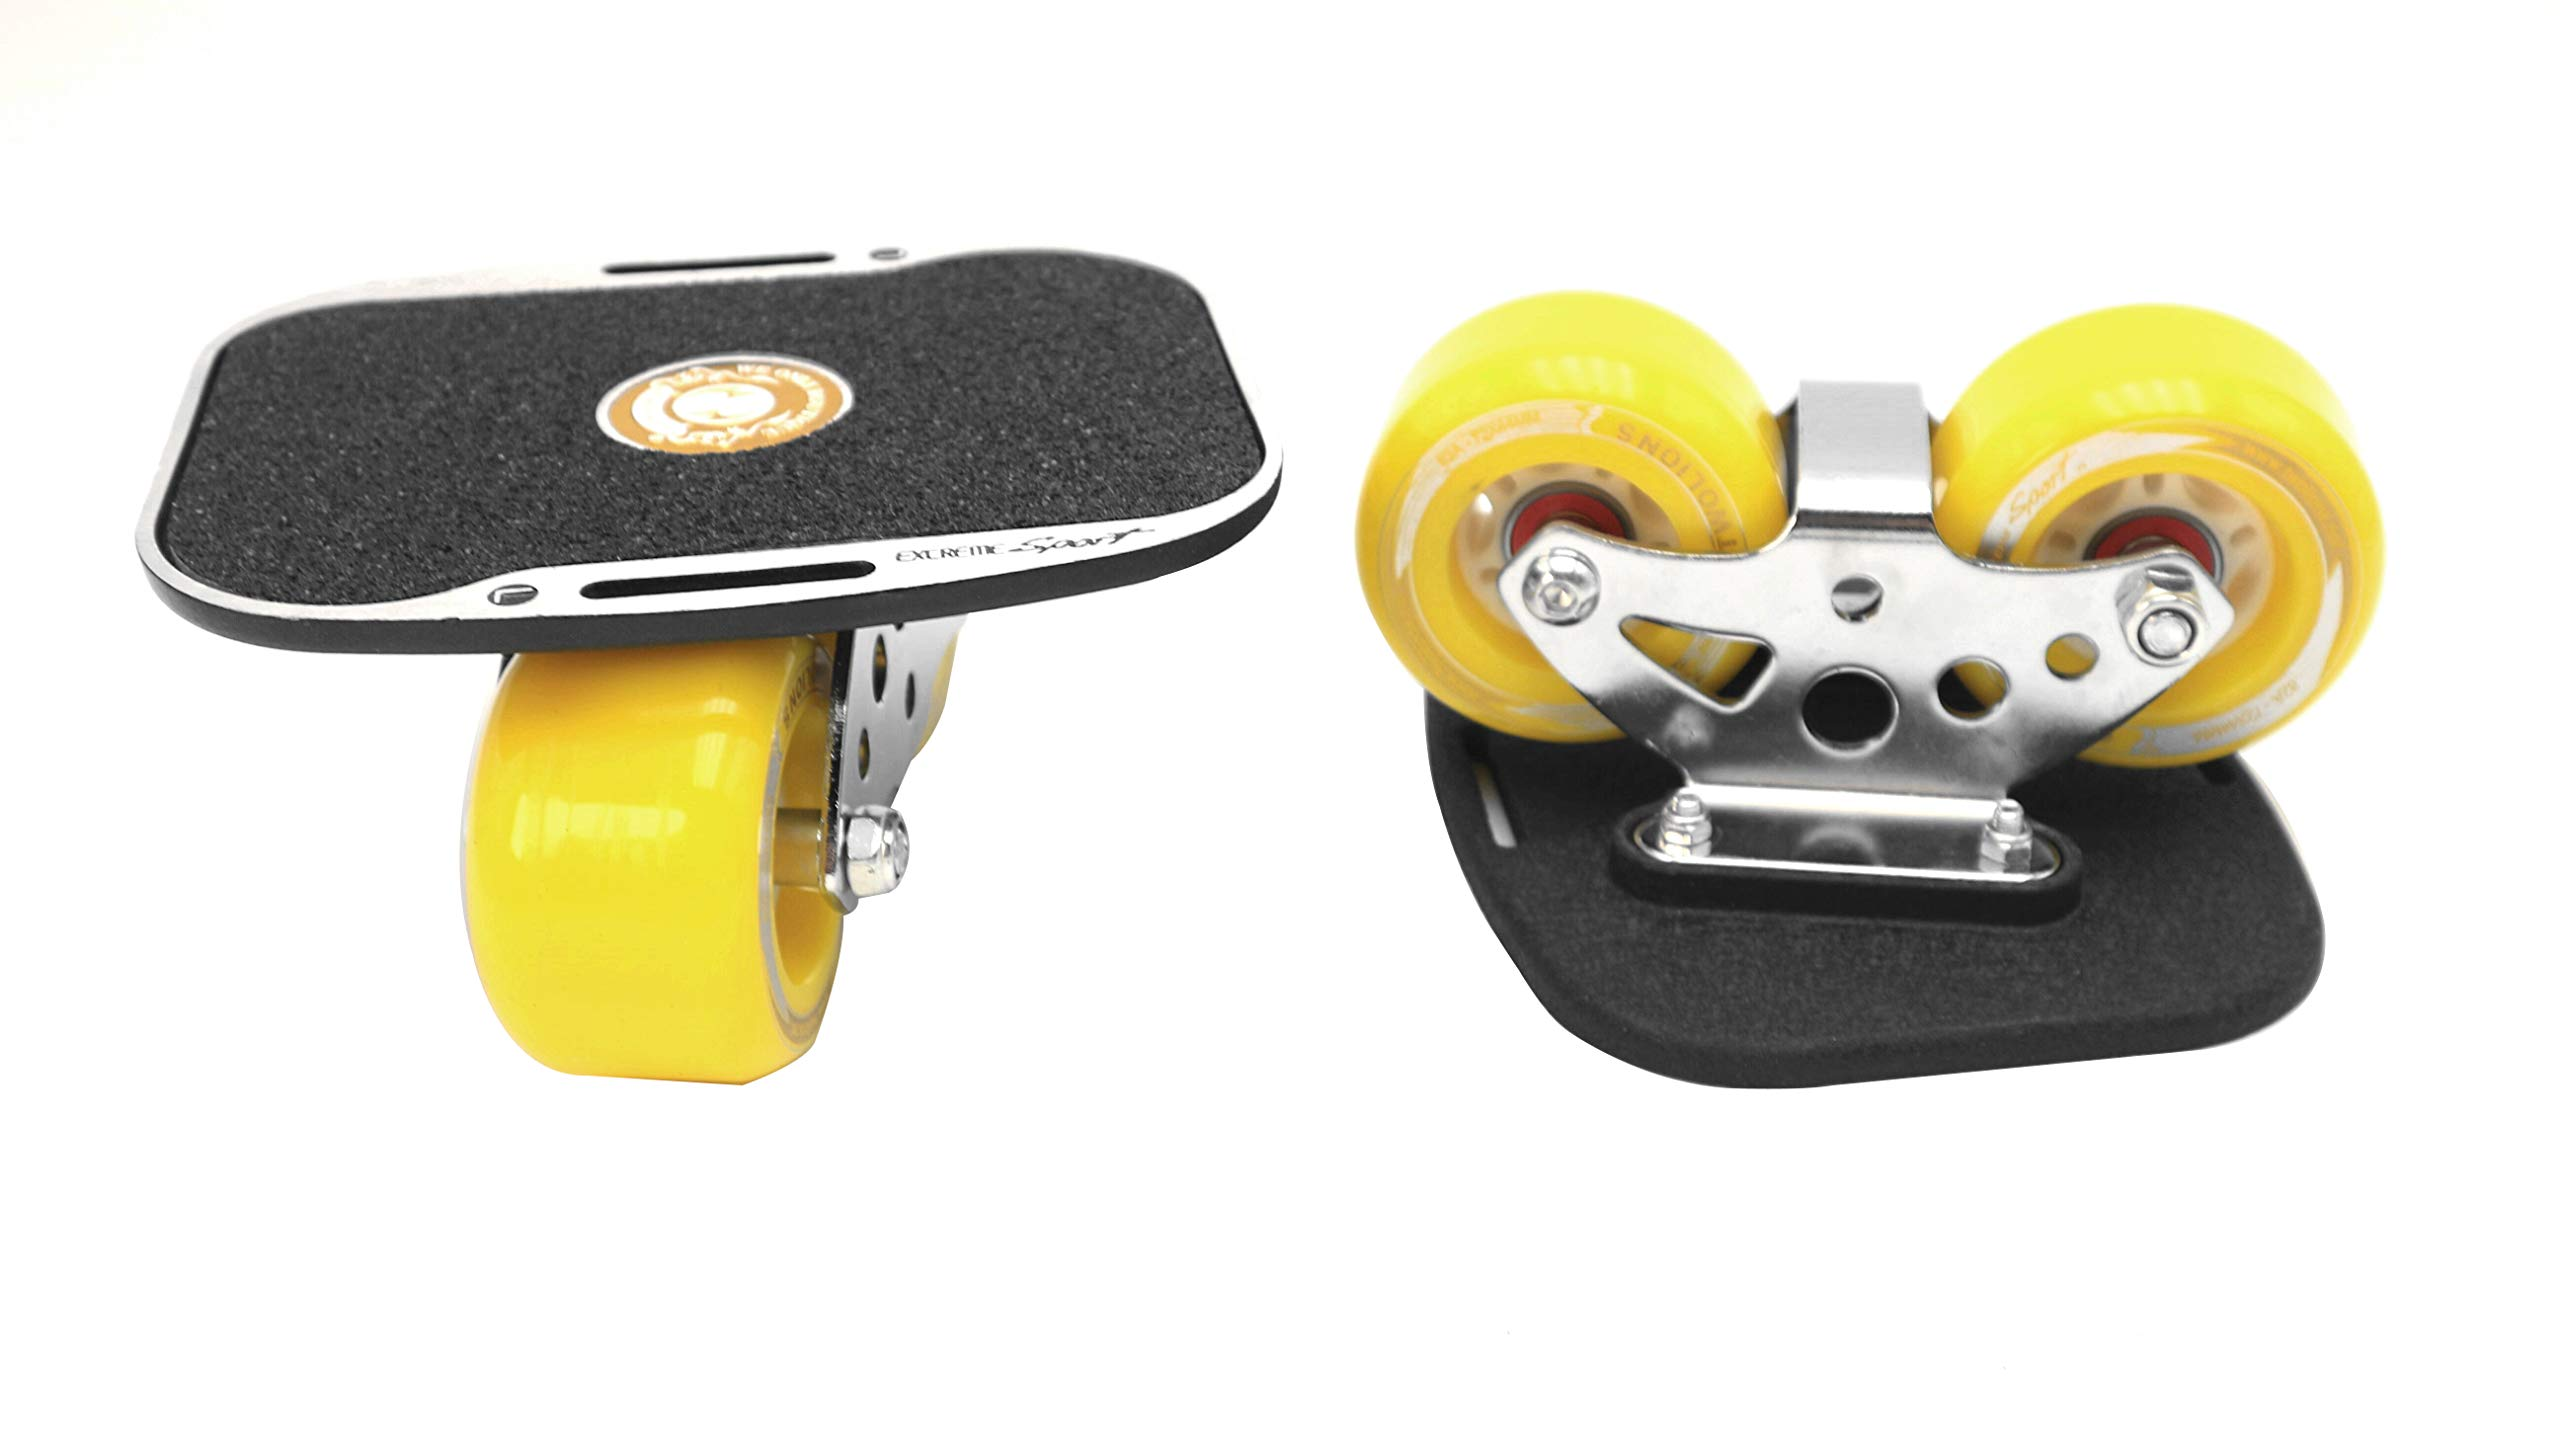 Roller Road Drift Skates Plate Pro Skates Anti-Slip Board Portable Split Skateboard All-in-one Aluminum Alloy with PU Wheels(Yellow) by Smartuan (Image #4)